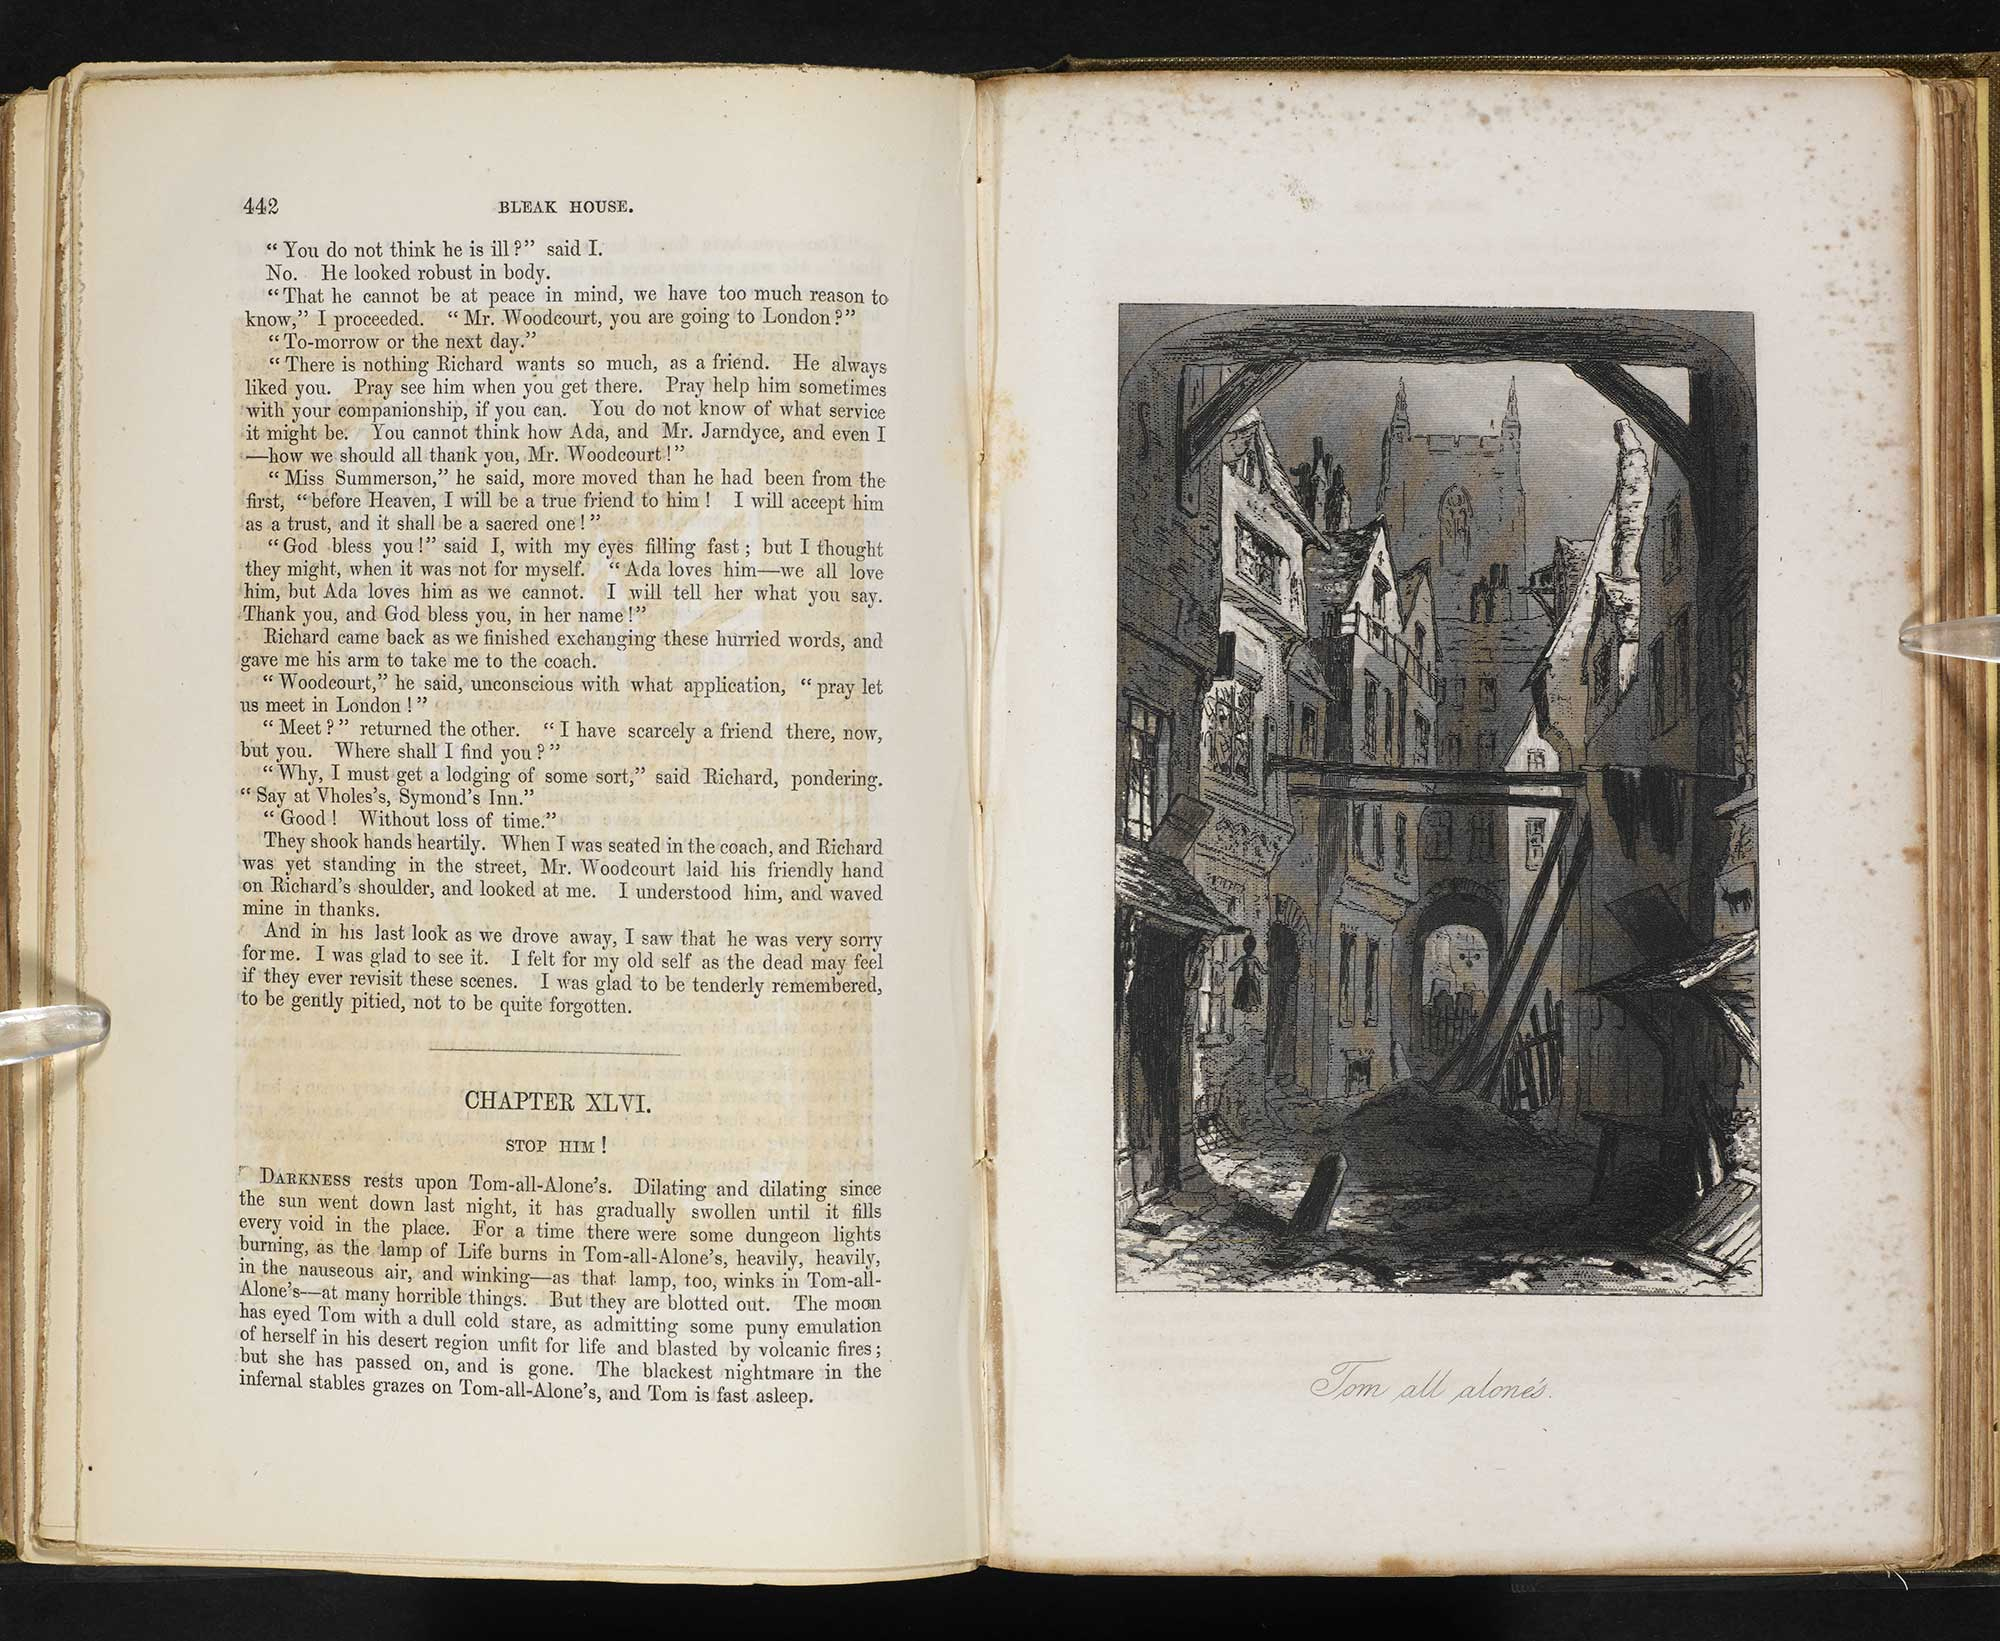 Bleak House first edition with illustrations [page: 442 and facing]